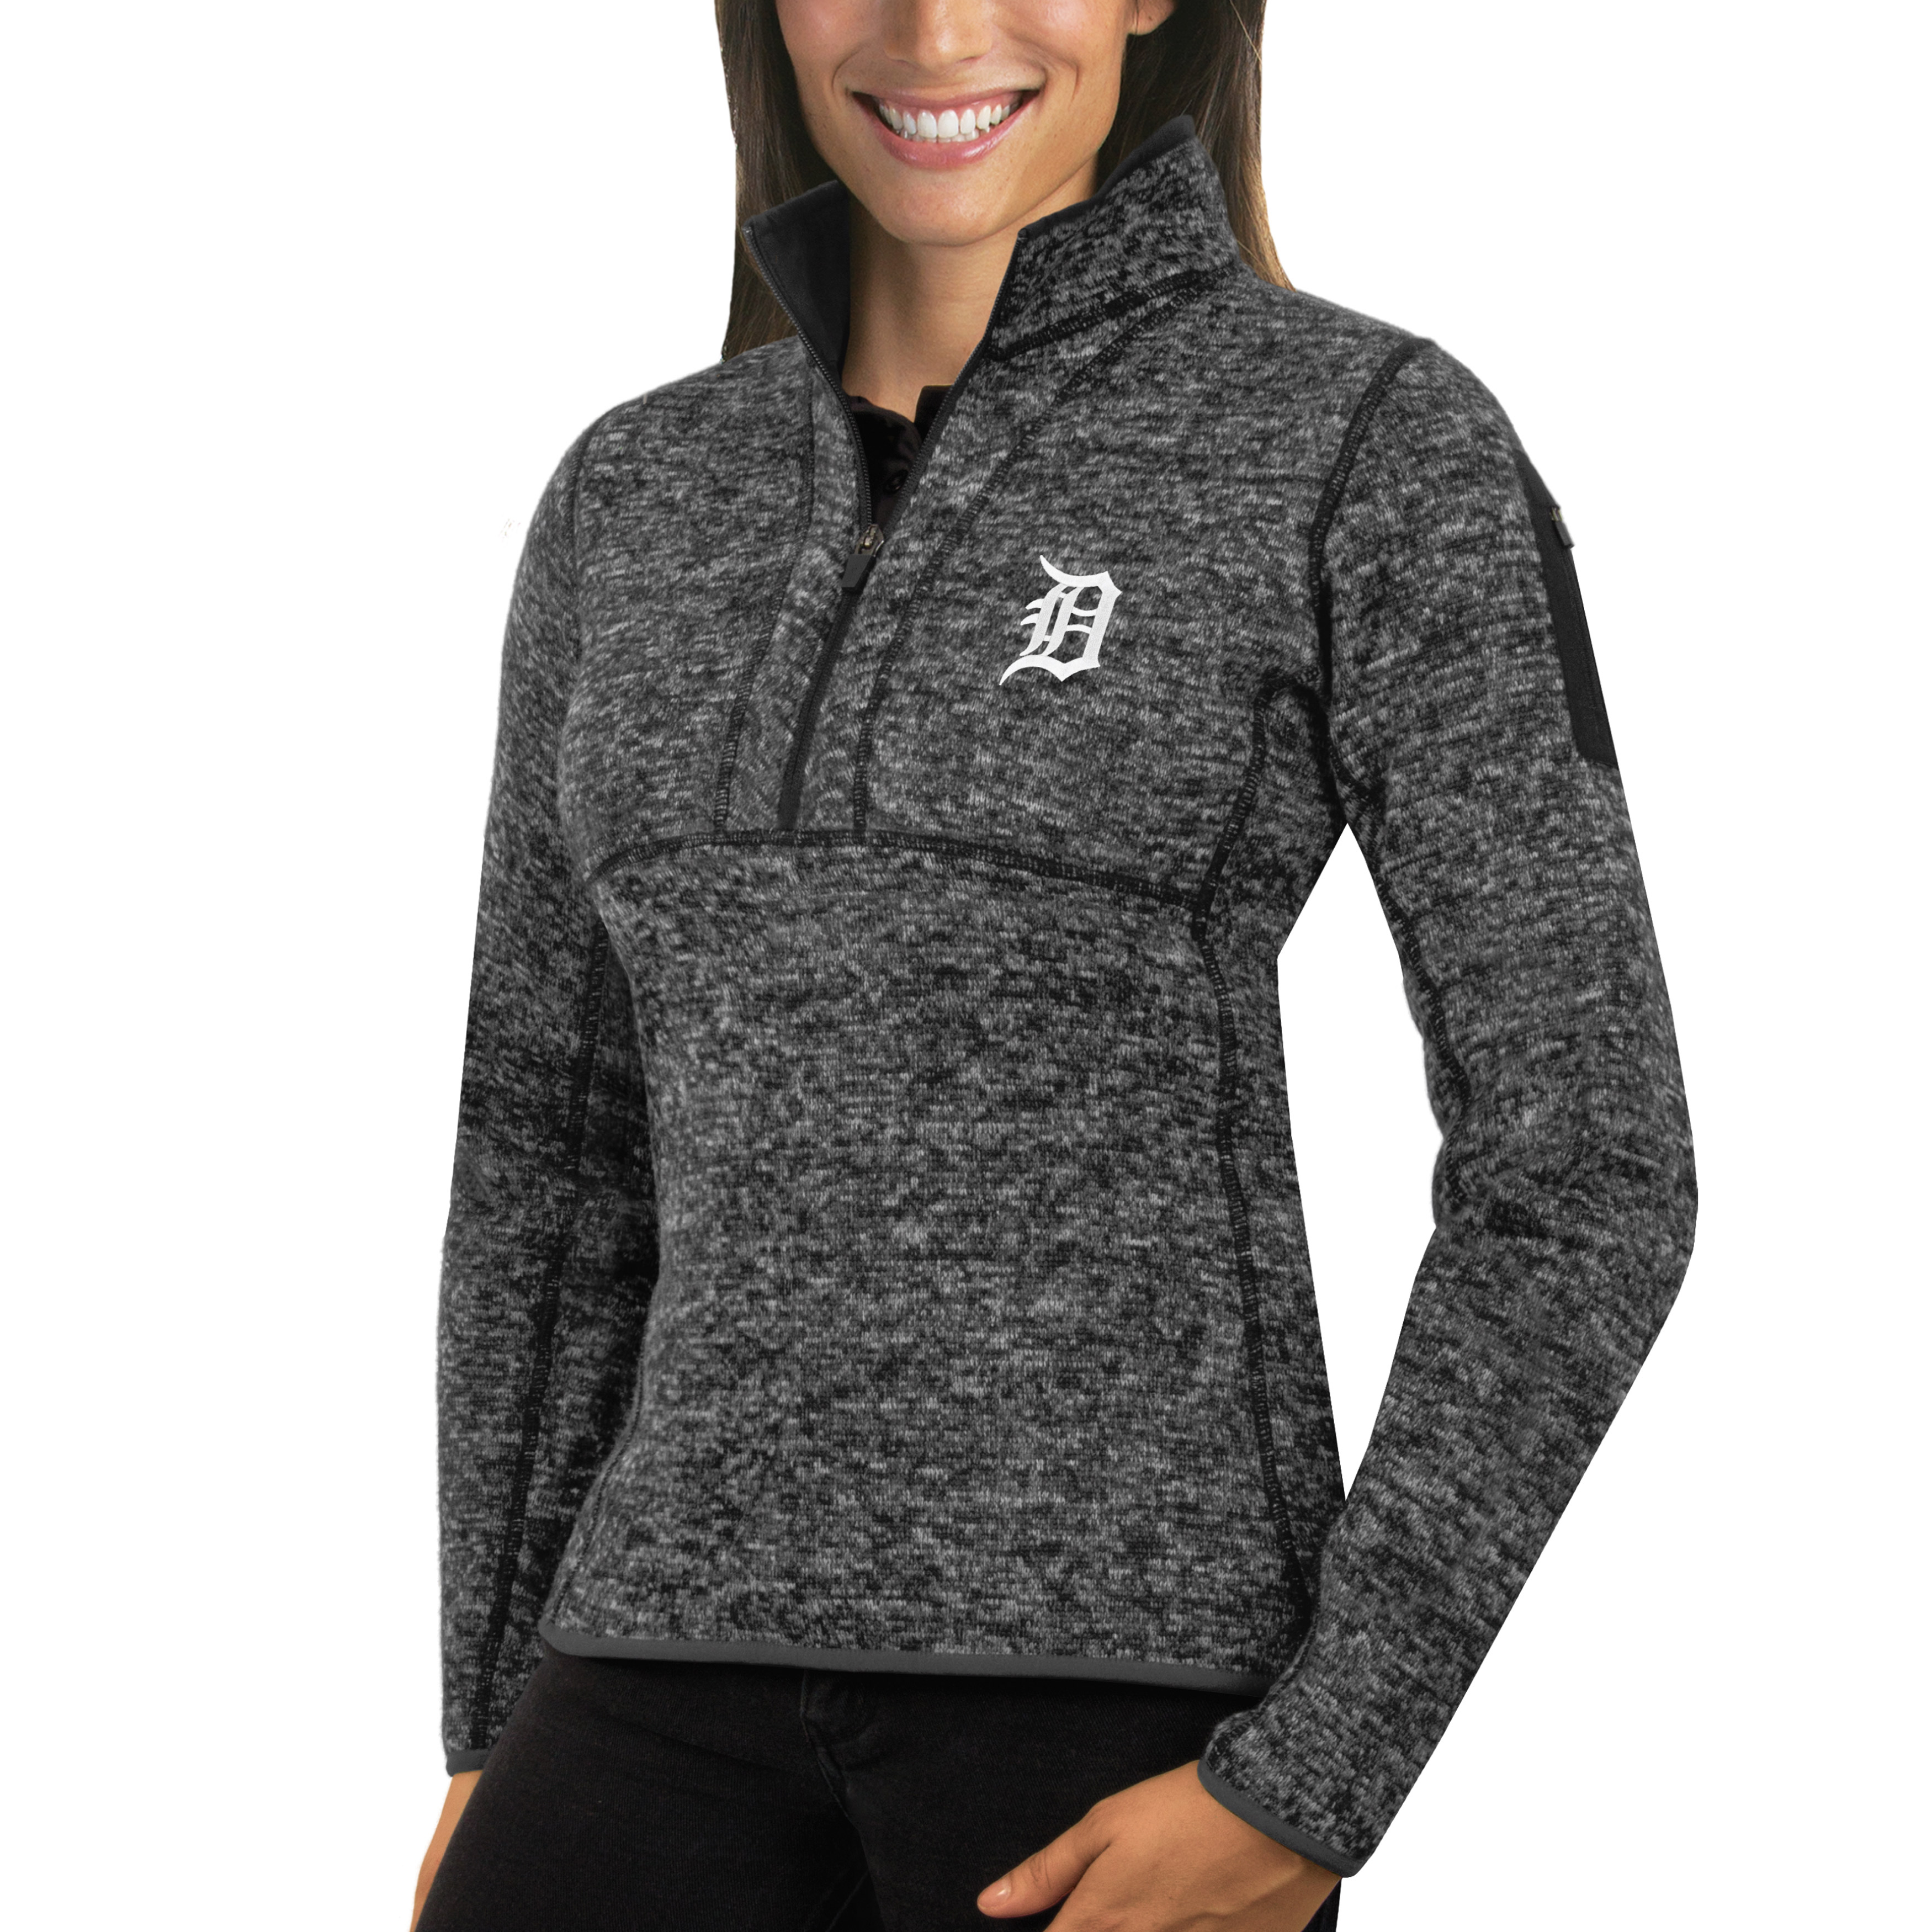 Detroit Tigers Antigua Women's Fortune Half-Zip Pullover Sweater - Heathered Charcoal